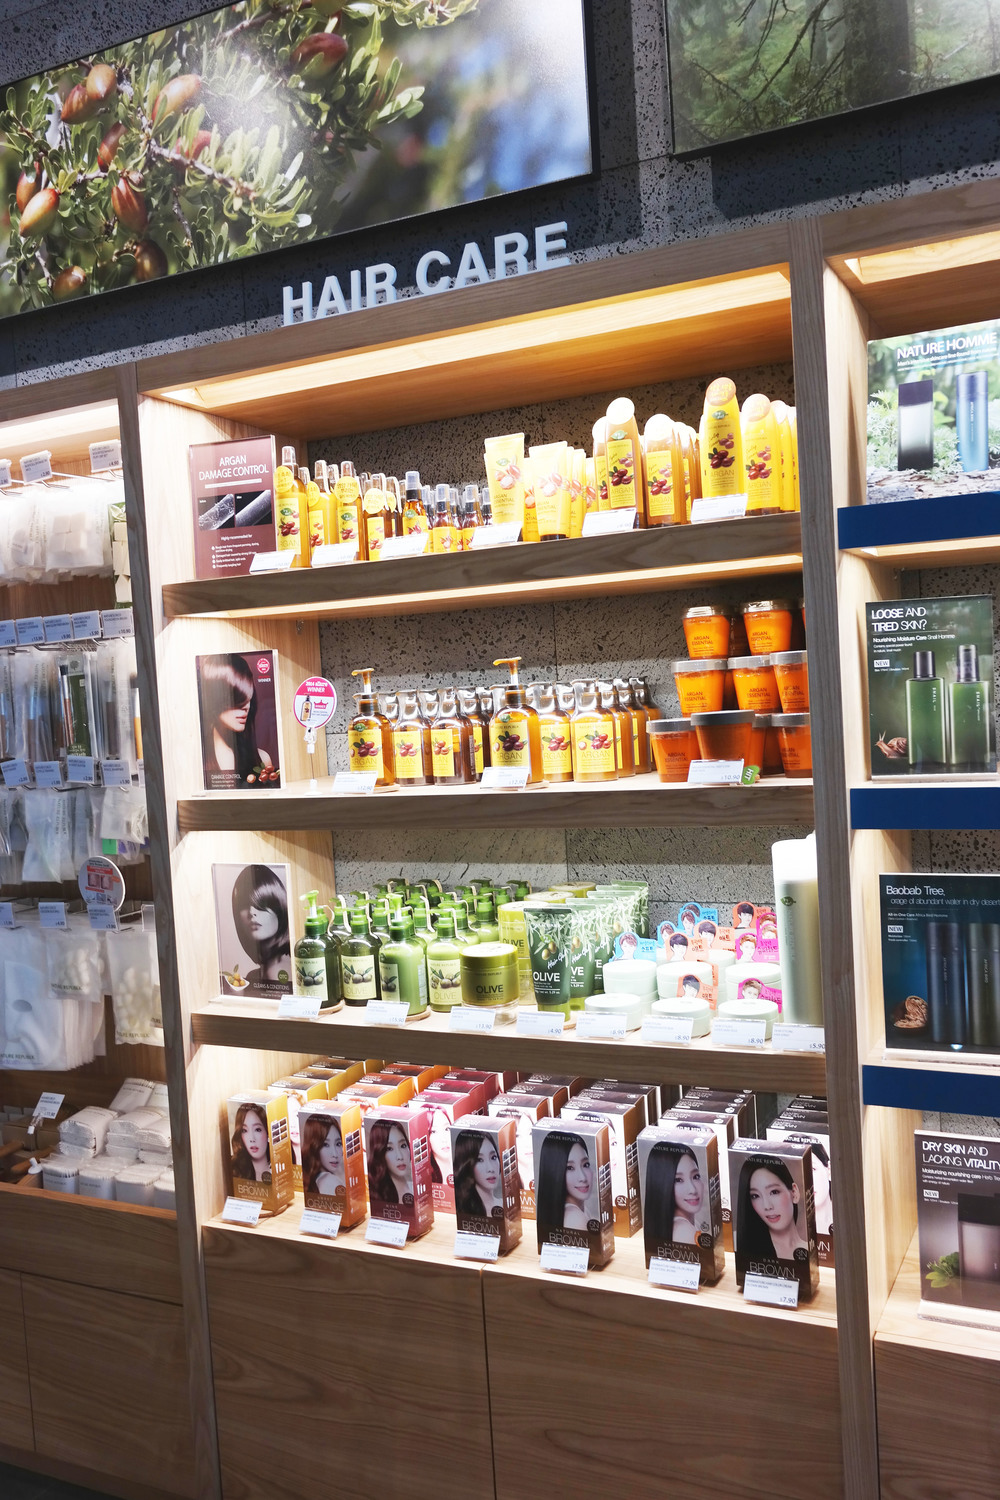 While you're shopping for skin stuff, and a hair section catches your eye... !!!